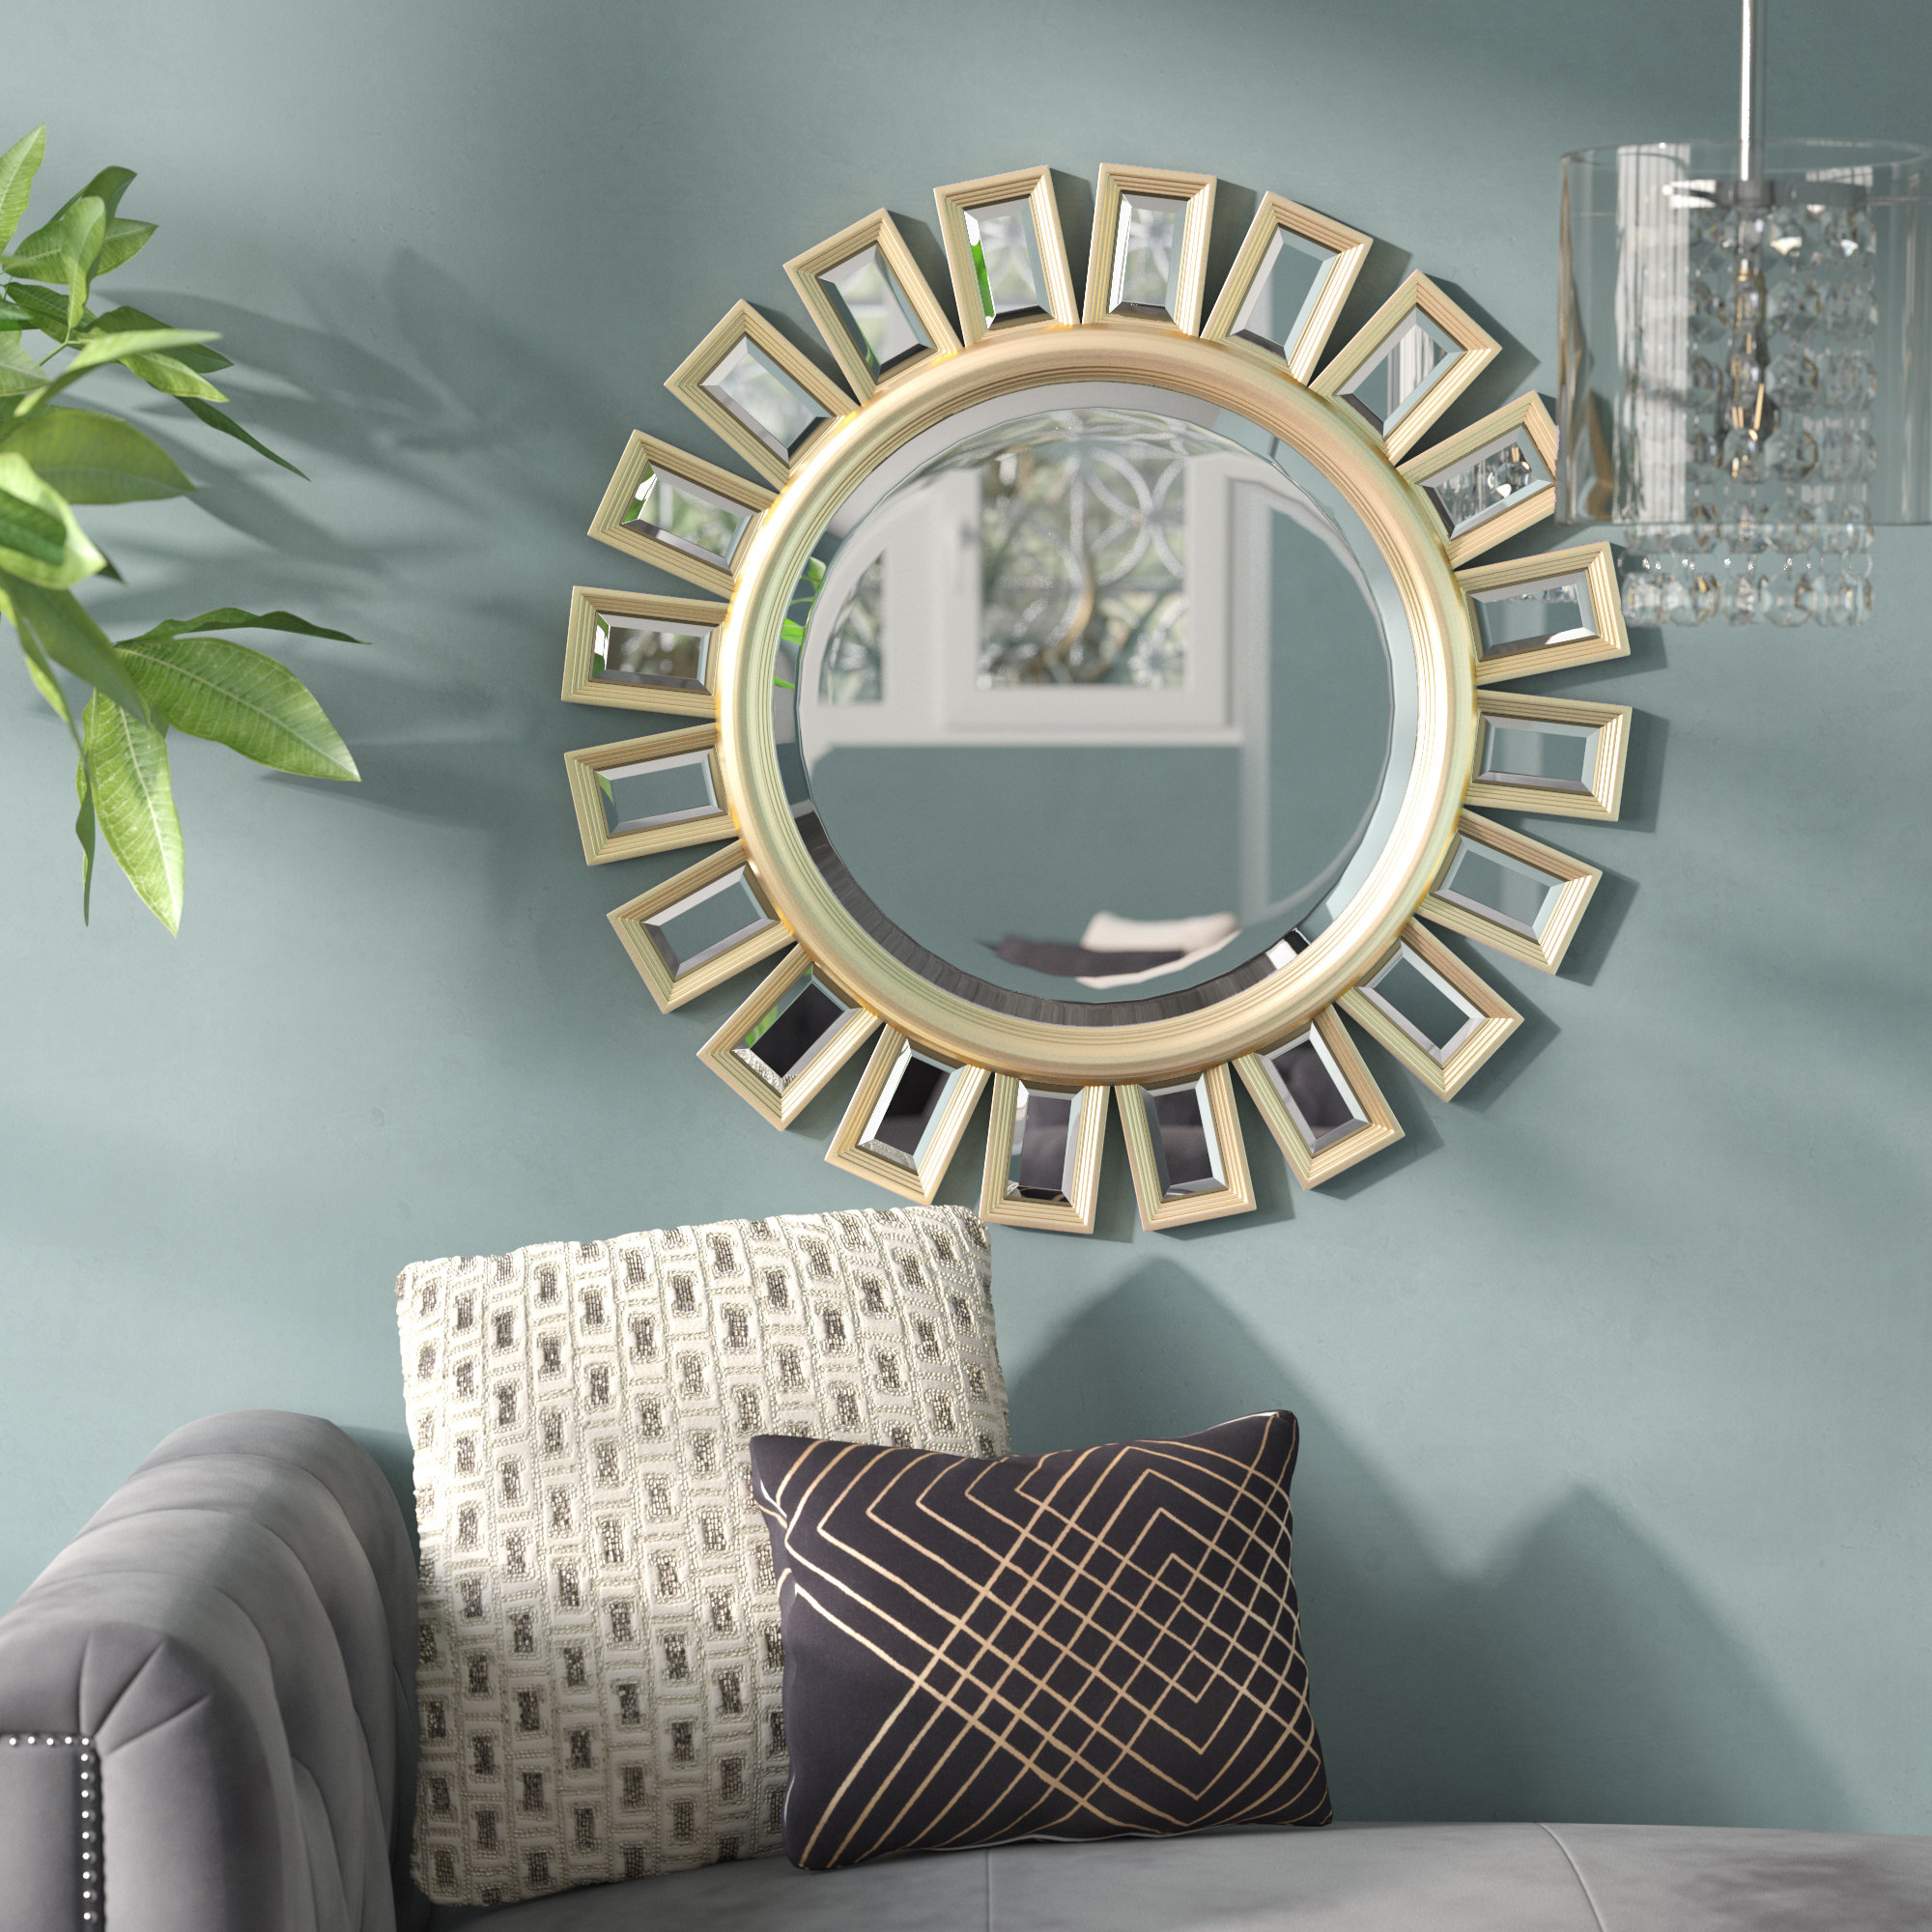 Sunburst Wall Mirrors You'll Love In 2019 | Wayfair Intended For Orion Starburst Wall Mirrors (Image 17 of 20)